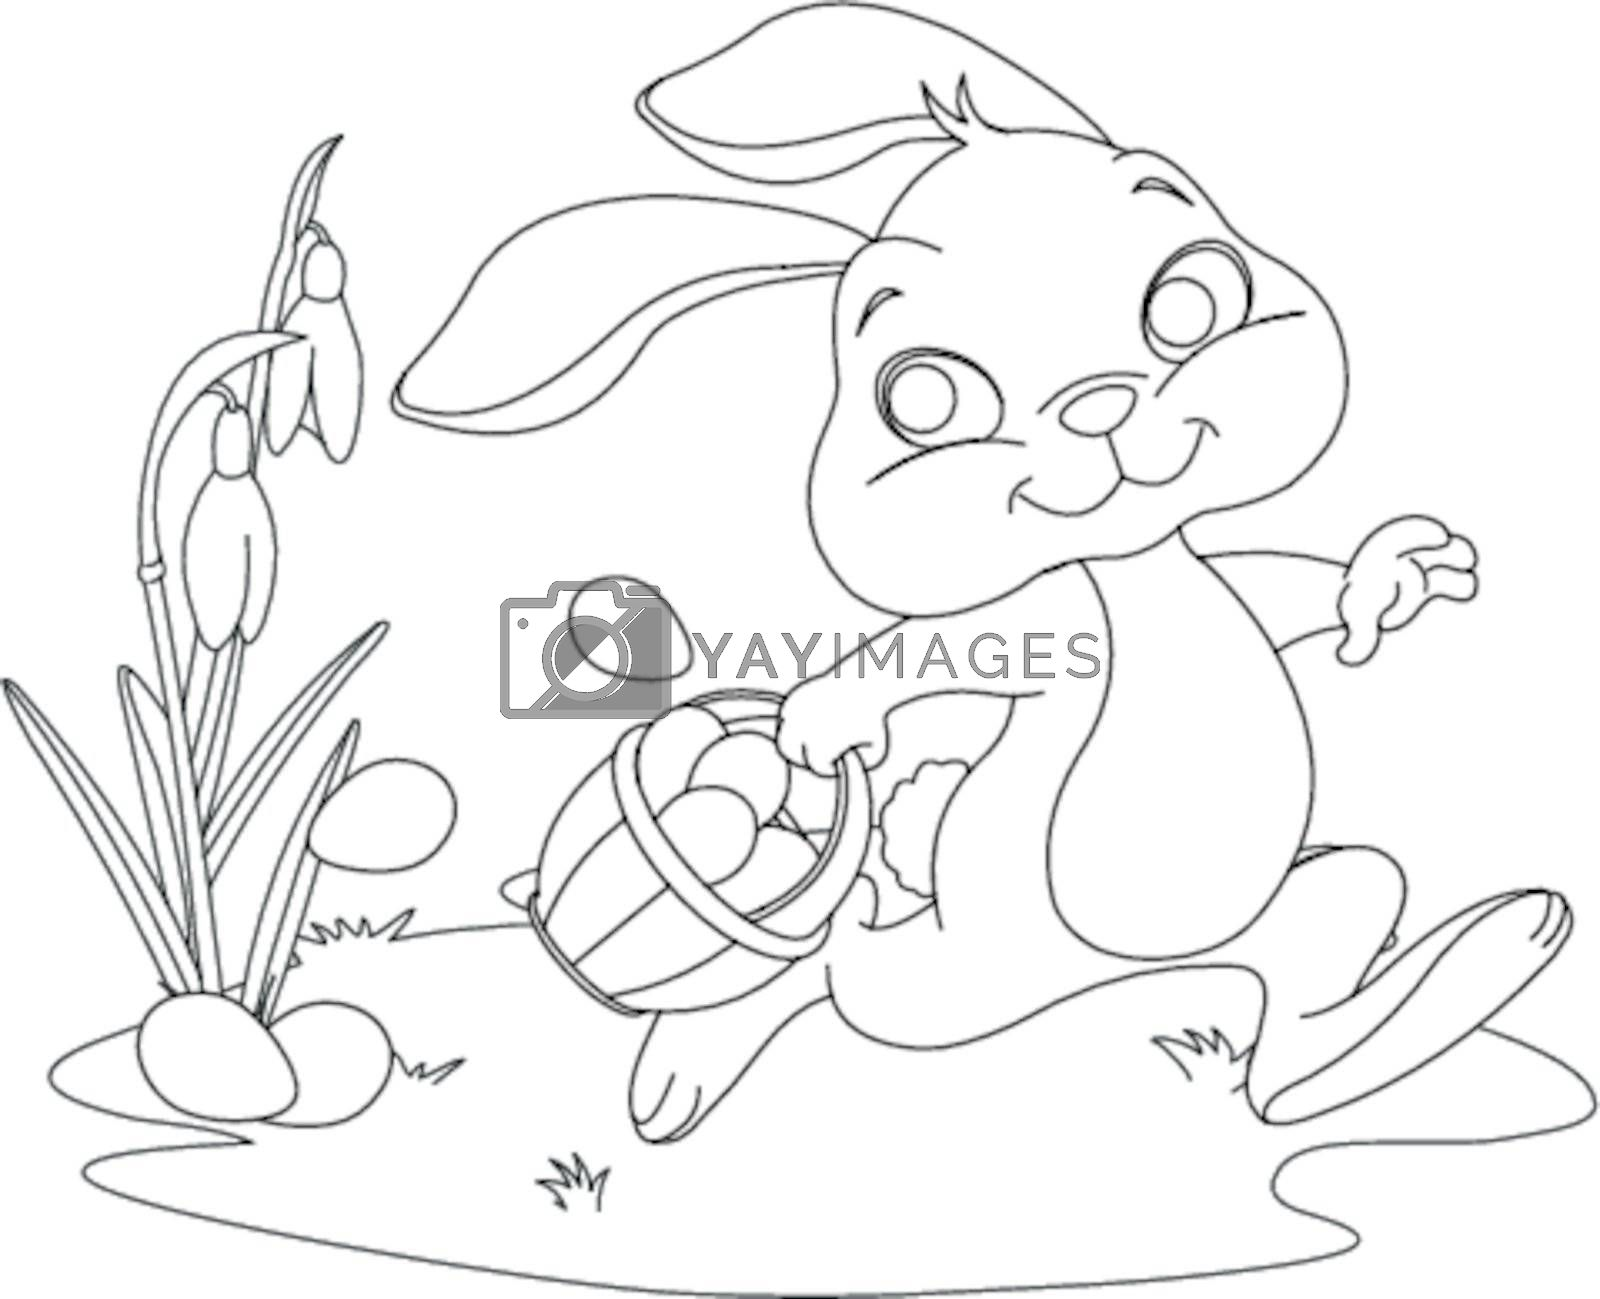 Easter Bunny Coloring Pages 2018 Easter egg Coloring book, easter ... | 1299x1600